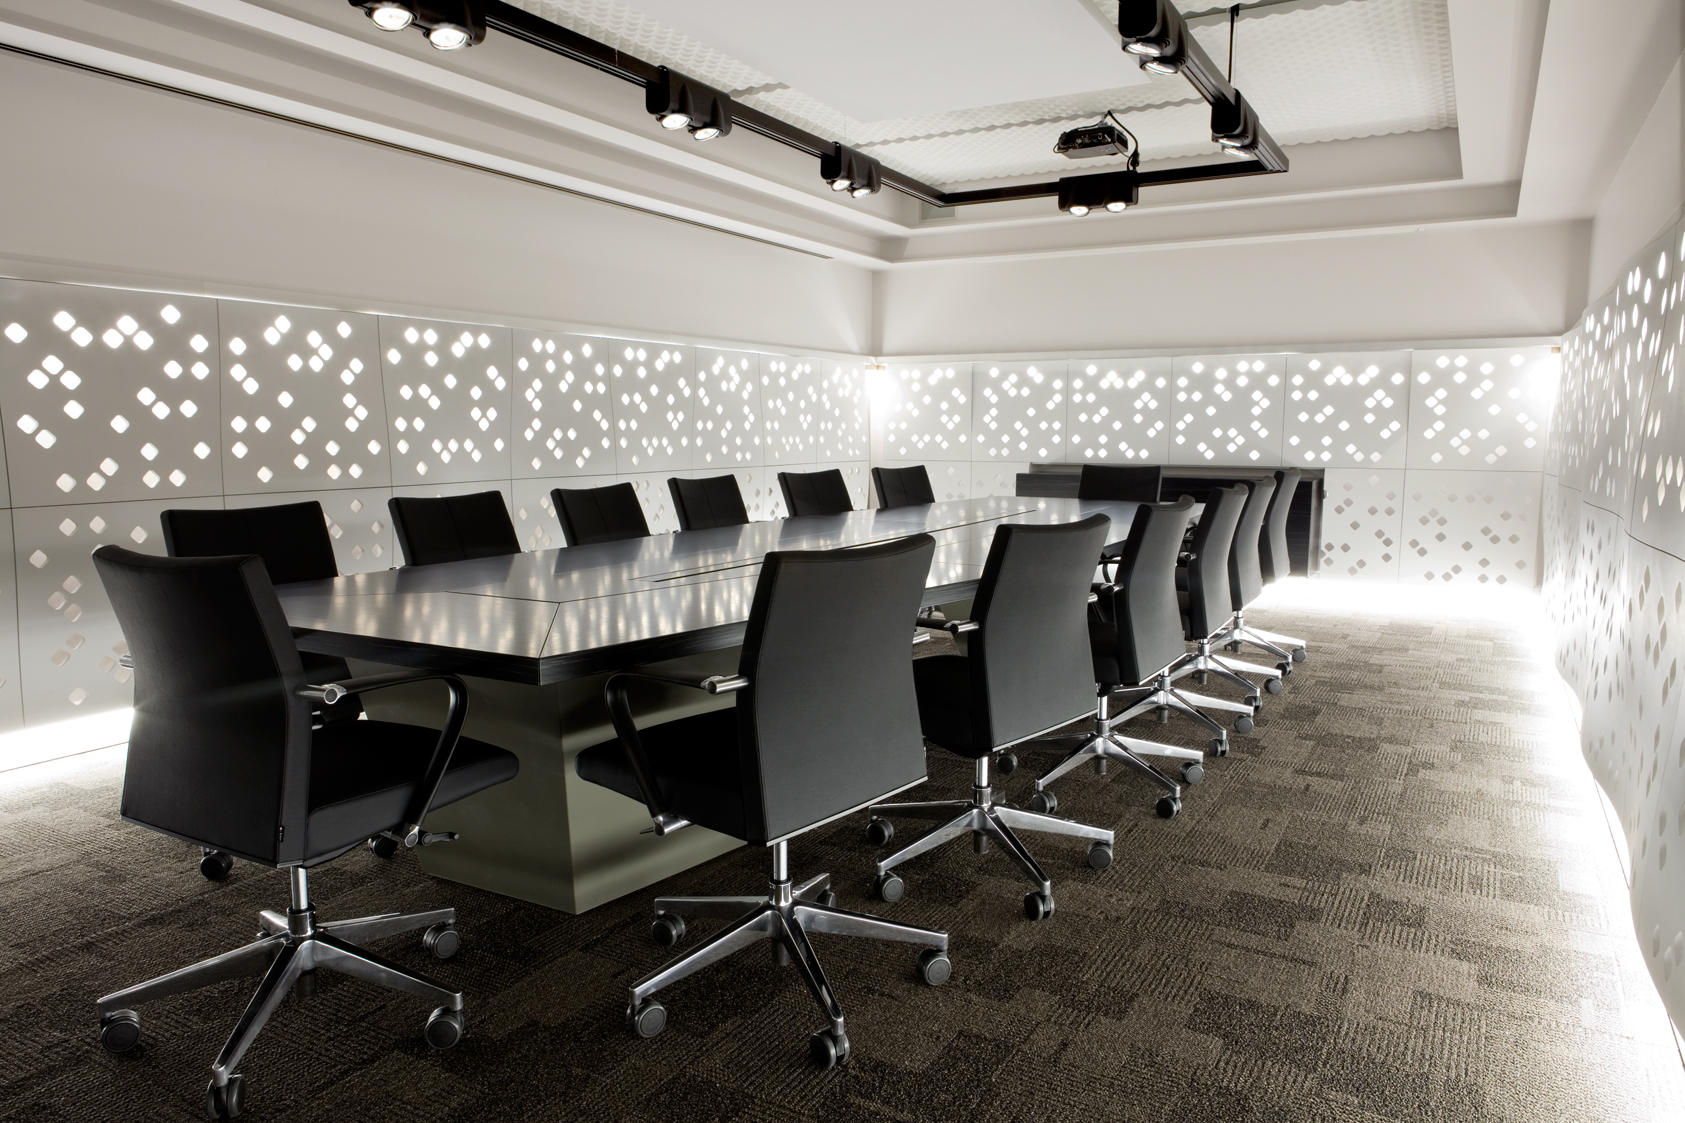 Office Wall Decorating Ideas: Daybooking Conference Rooms...The Future Of Meetings